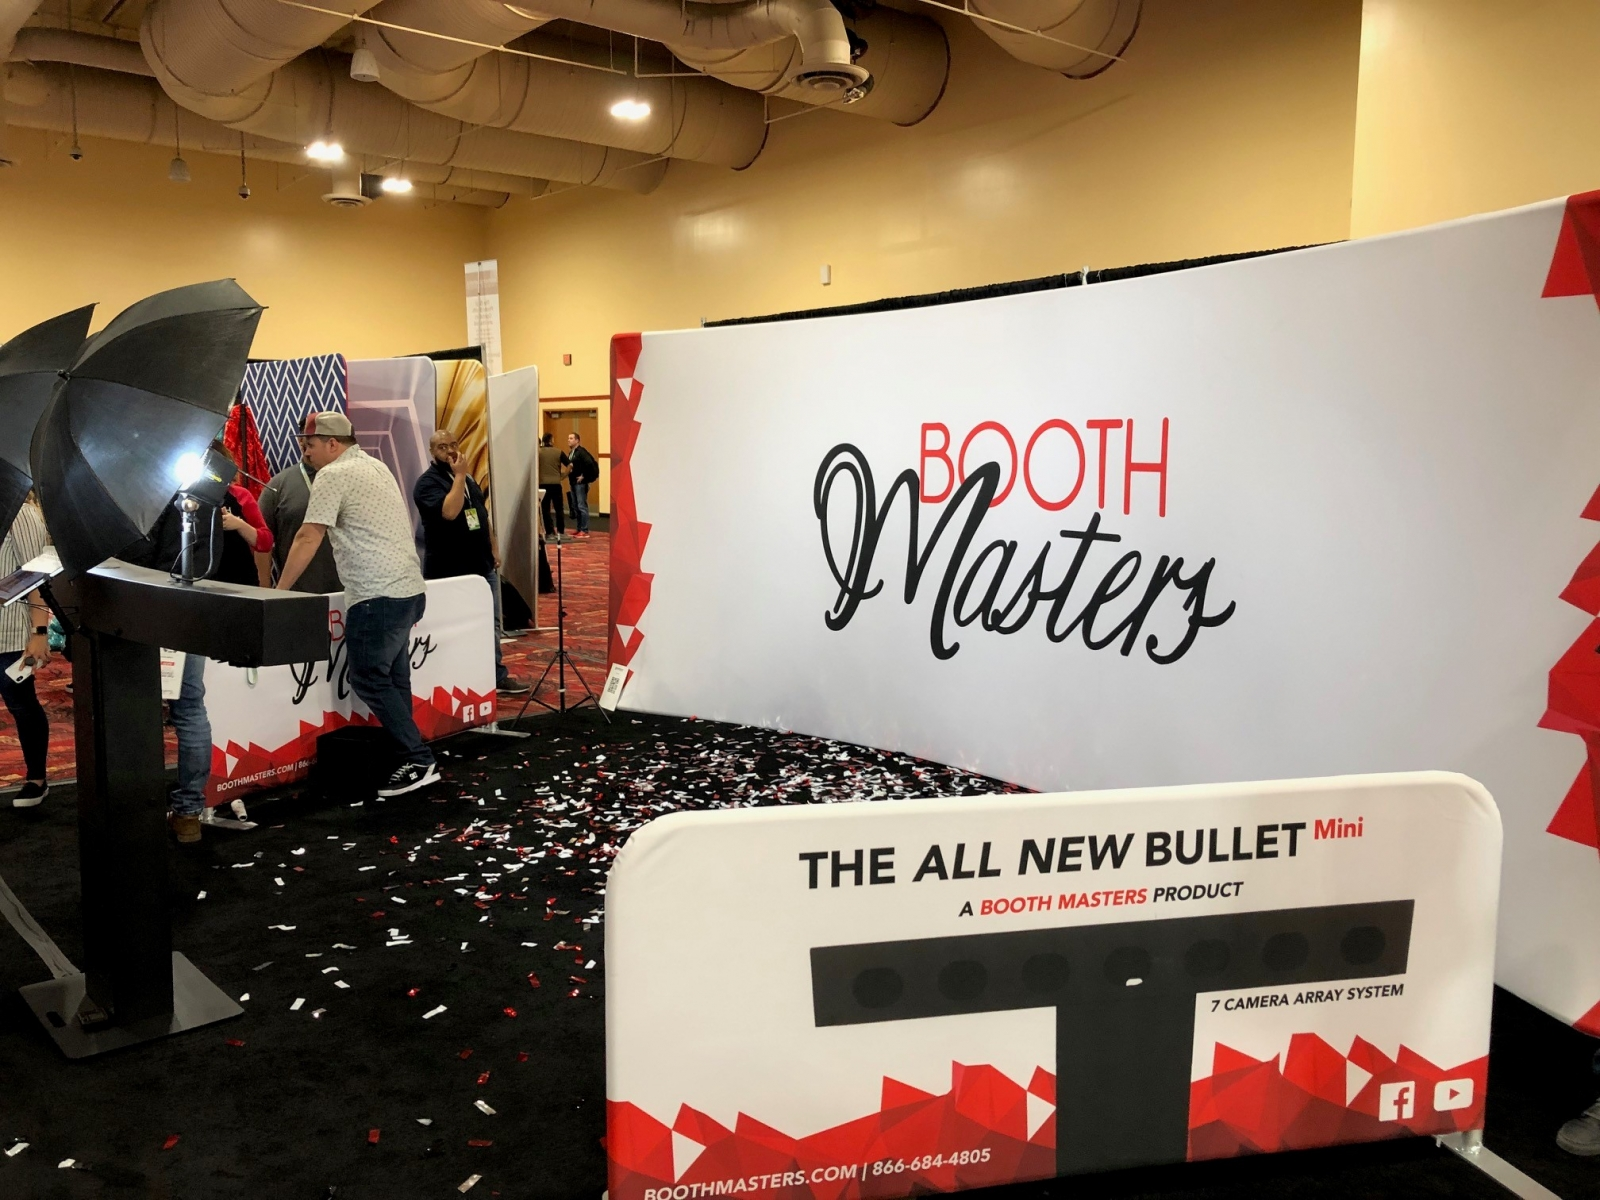 Photo Booth Expo 2019 - Booth Master Bullet Time - Adept Photo Booths Perth